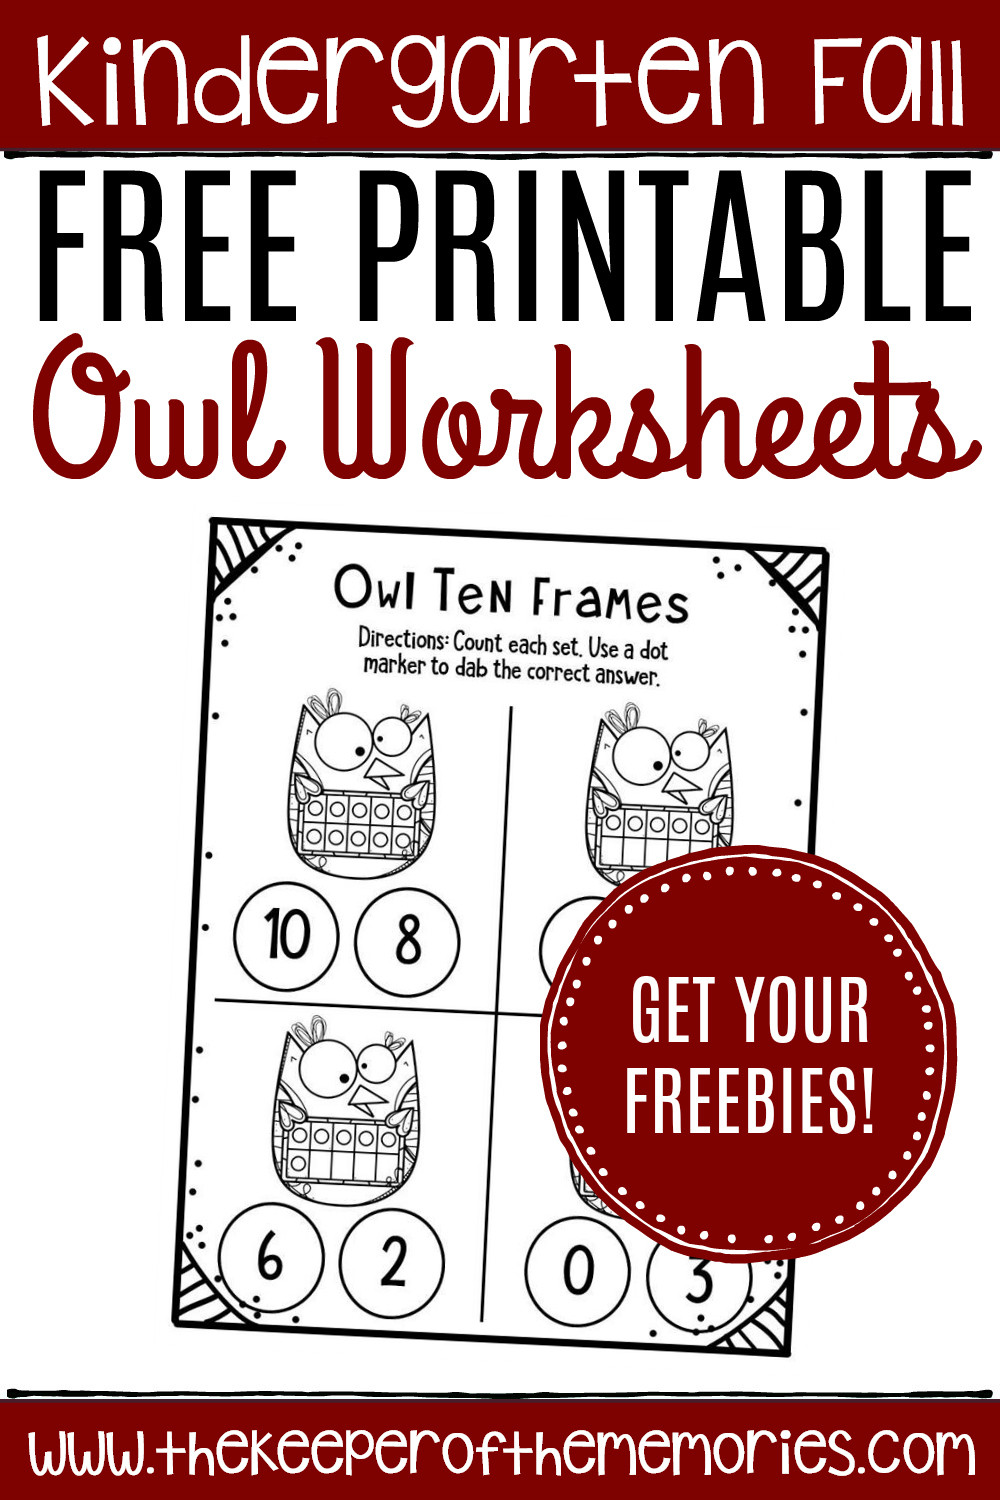 Free Printable Ten Frame Worksheets Free Printable Owl Ten Frame Worksheets